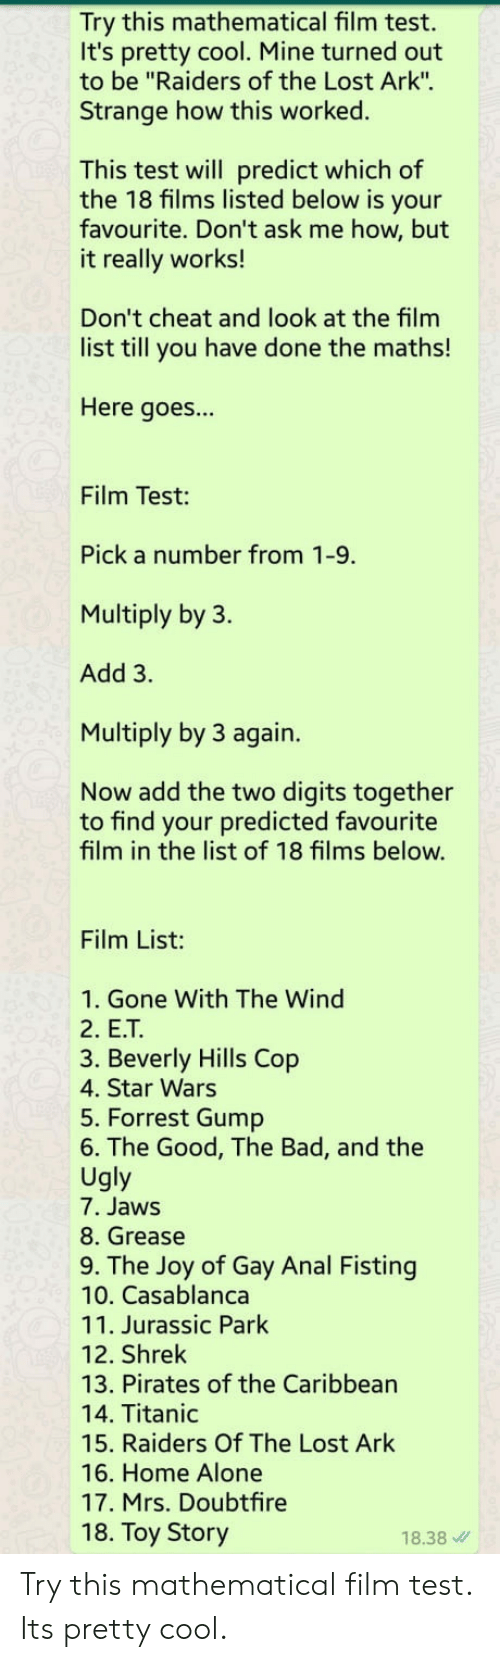 """Forrest Gump: Try this mathematical film test.  It's pretty cool. Mine turned out  to be """"Raiders of the Lost Ark"""".  Strange how this worked.  This test will predict which of  the 18 films listed below is your  favourite. Don't ask me how, but  it really works!  Don't cheat and look at the film  list till you have done the maths!  Here goes...  Film Test:  Pick a number from 1-9.  Multiply by 3.  Add 3.  Multiply by 3 again.  Now add the two digits together  to find your predicted favourite  film in the list of 18 films below.  Film List:  1. Gone With The Wind  2. E.T  3. Beverly Hills Cop  4. Star Wars  5. Forrest Gump  6. The Good, The Bad, and the  Ugly  7. Jaws  8. Grease  9. The Joy of Gay Anal Fisting  10. Casablanca  11. Jurassic Park  12. Shrek  13. Pirates of the Caribbean  14. Titanic  15. Raiders Of The Lost Ark  16. Home Alone  17. Mrs. Doubtfire  18. Toy Story  18.38 Try this mathematical film test. Its pretty cool."""